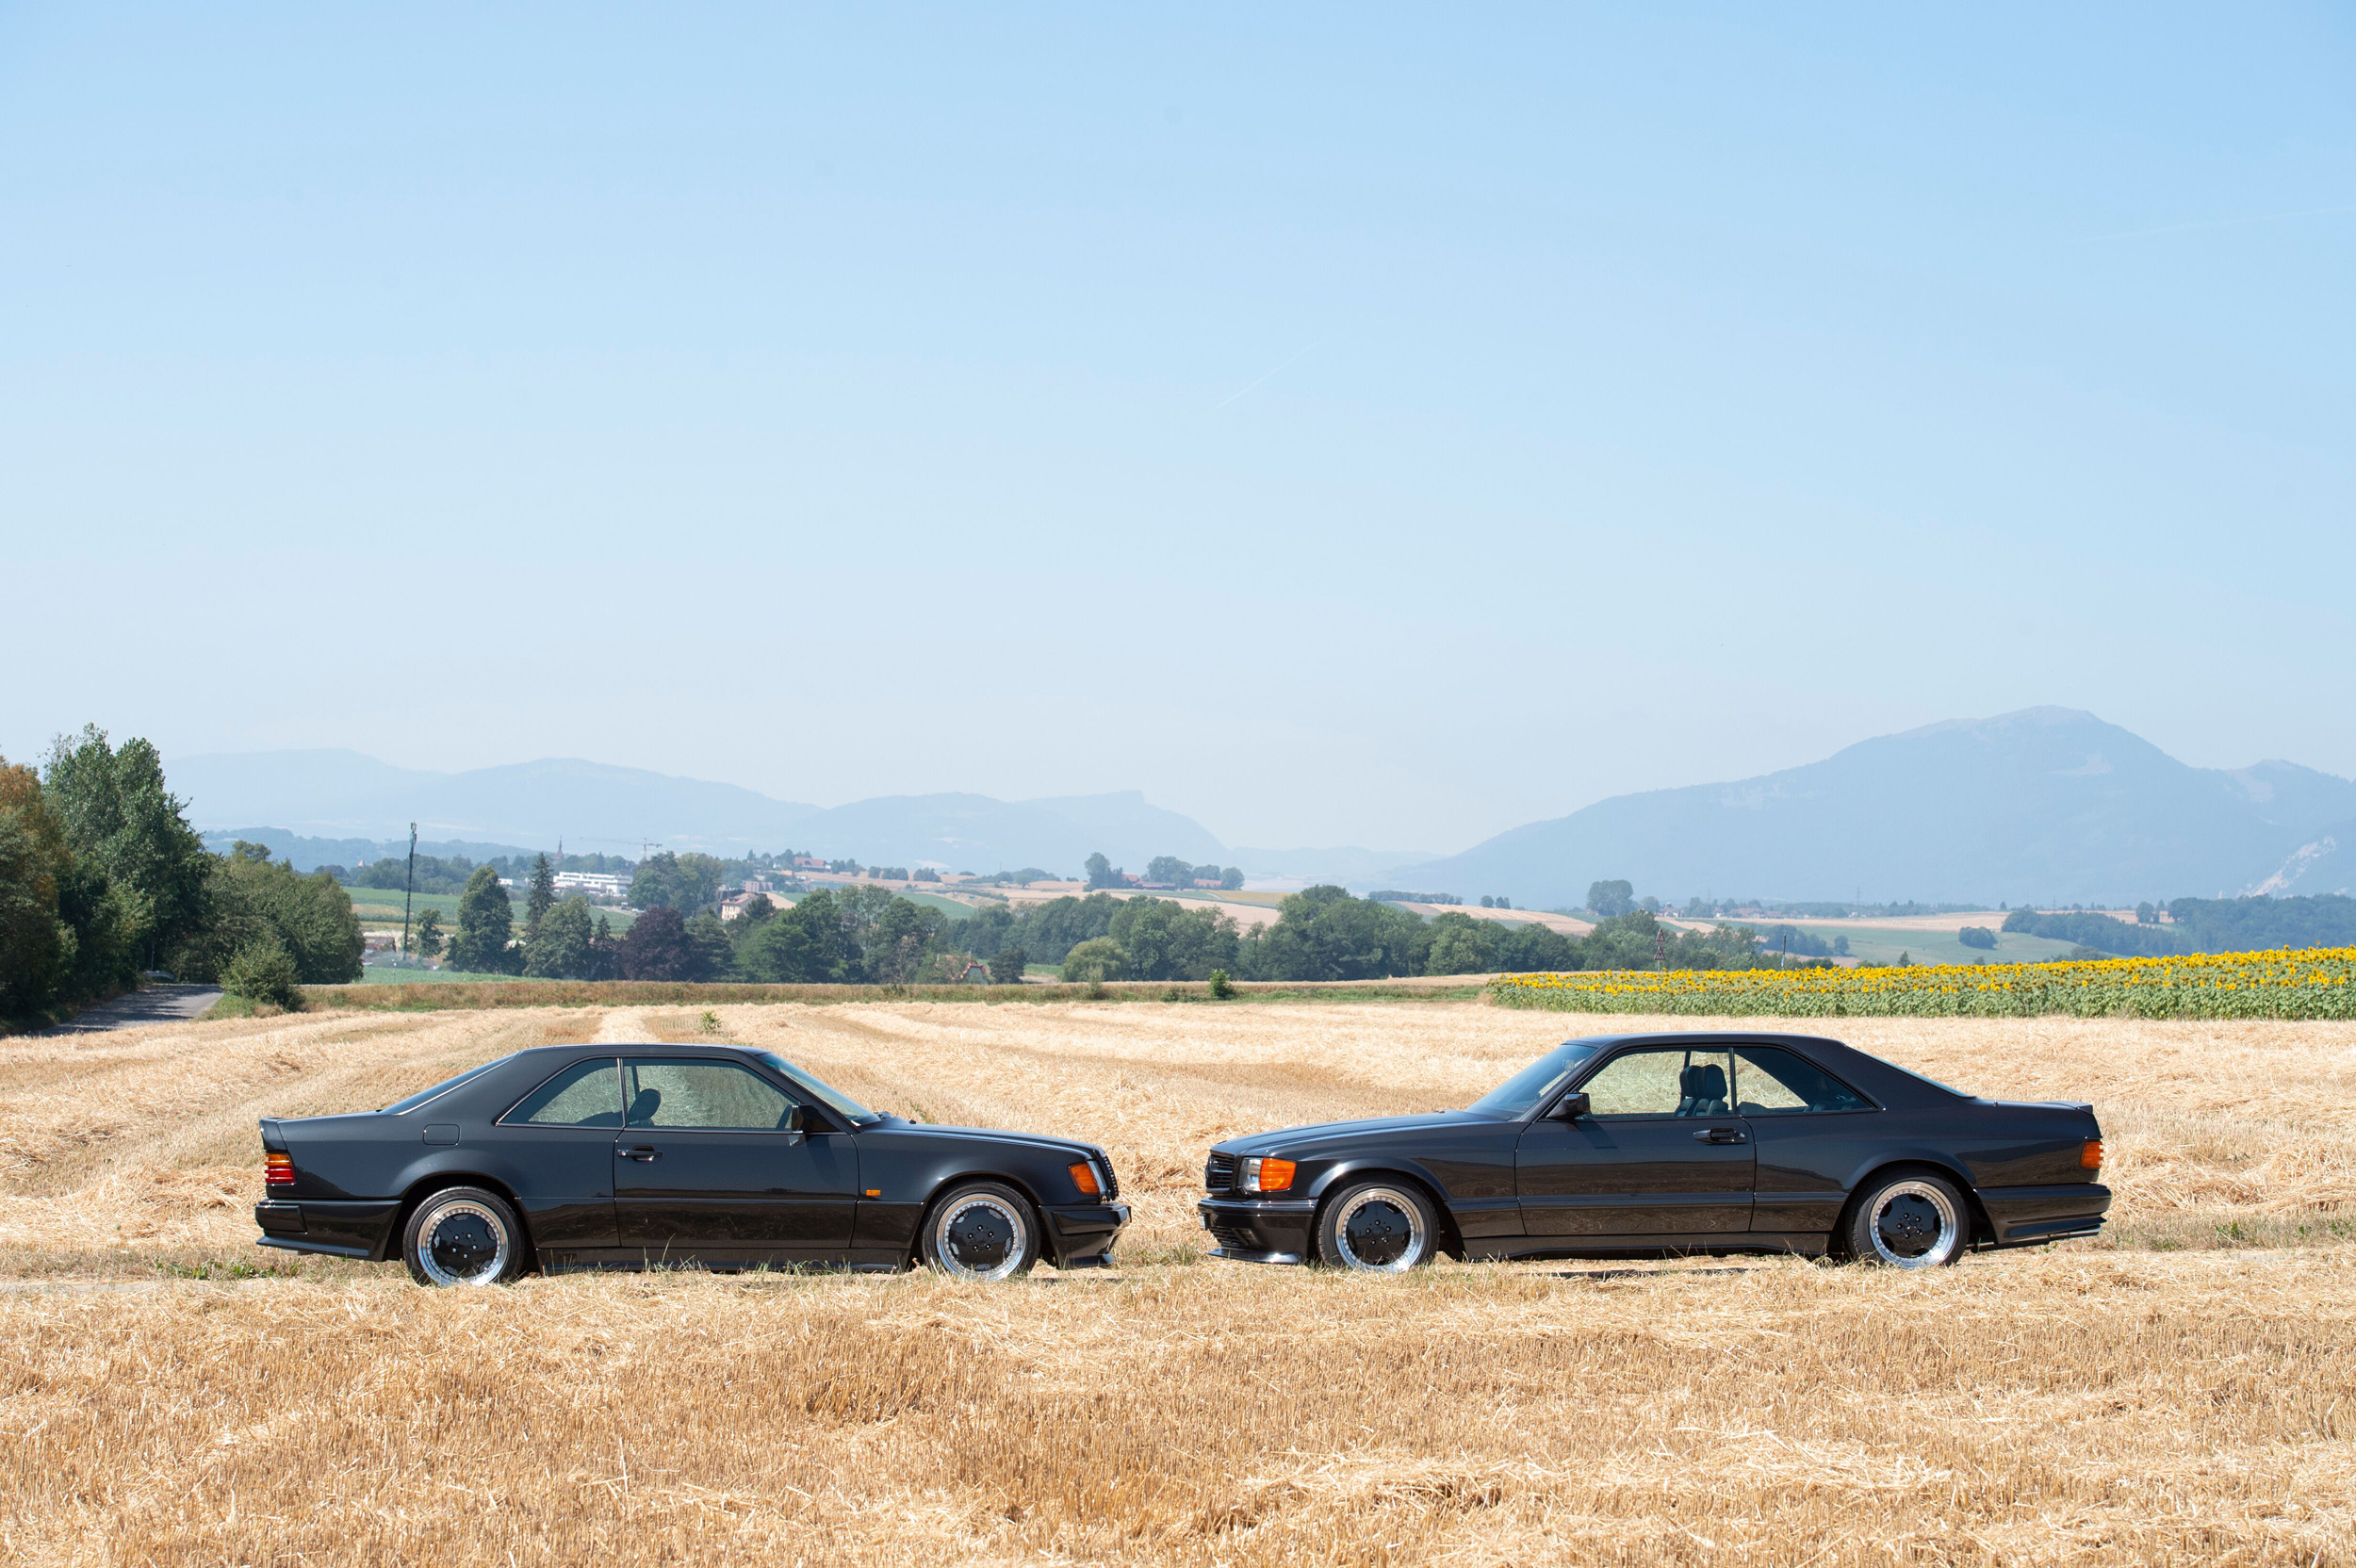 190905 The1992 Mercedes-Benz 300 CE 6.0 AMG 'Hammer' and 1991 Mercedes-Benz 560 SEC AMG DOHC 6.0 'Wide-body' (Credit - Tom Wood © 2019 Courtesy of RM Sotheby's)